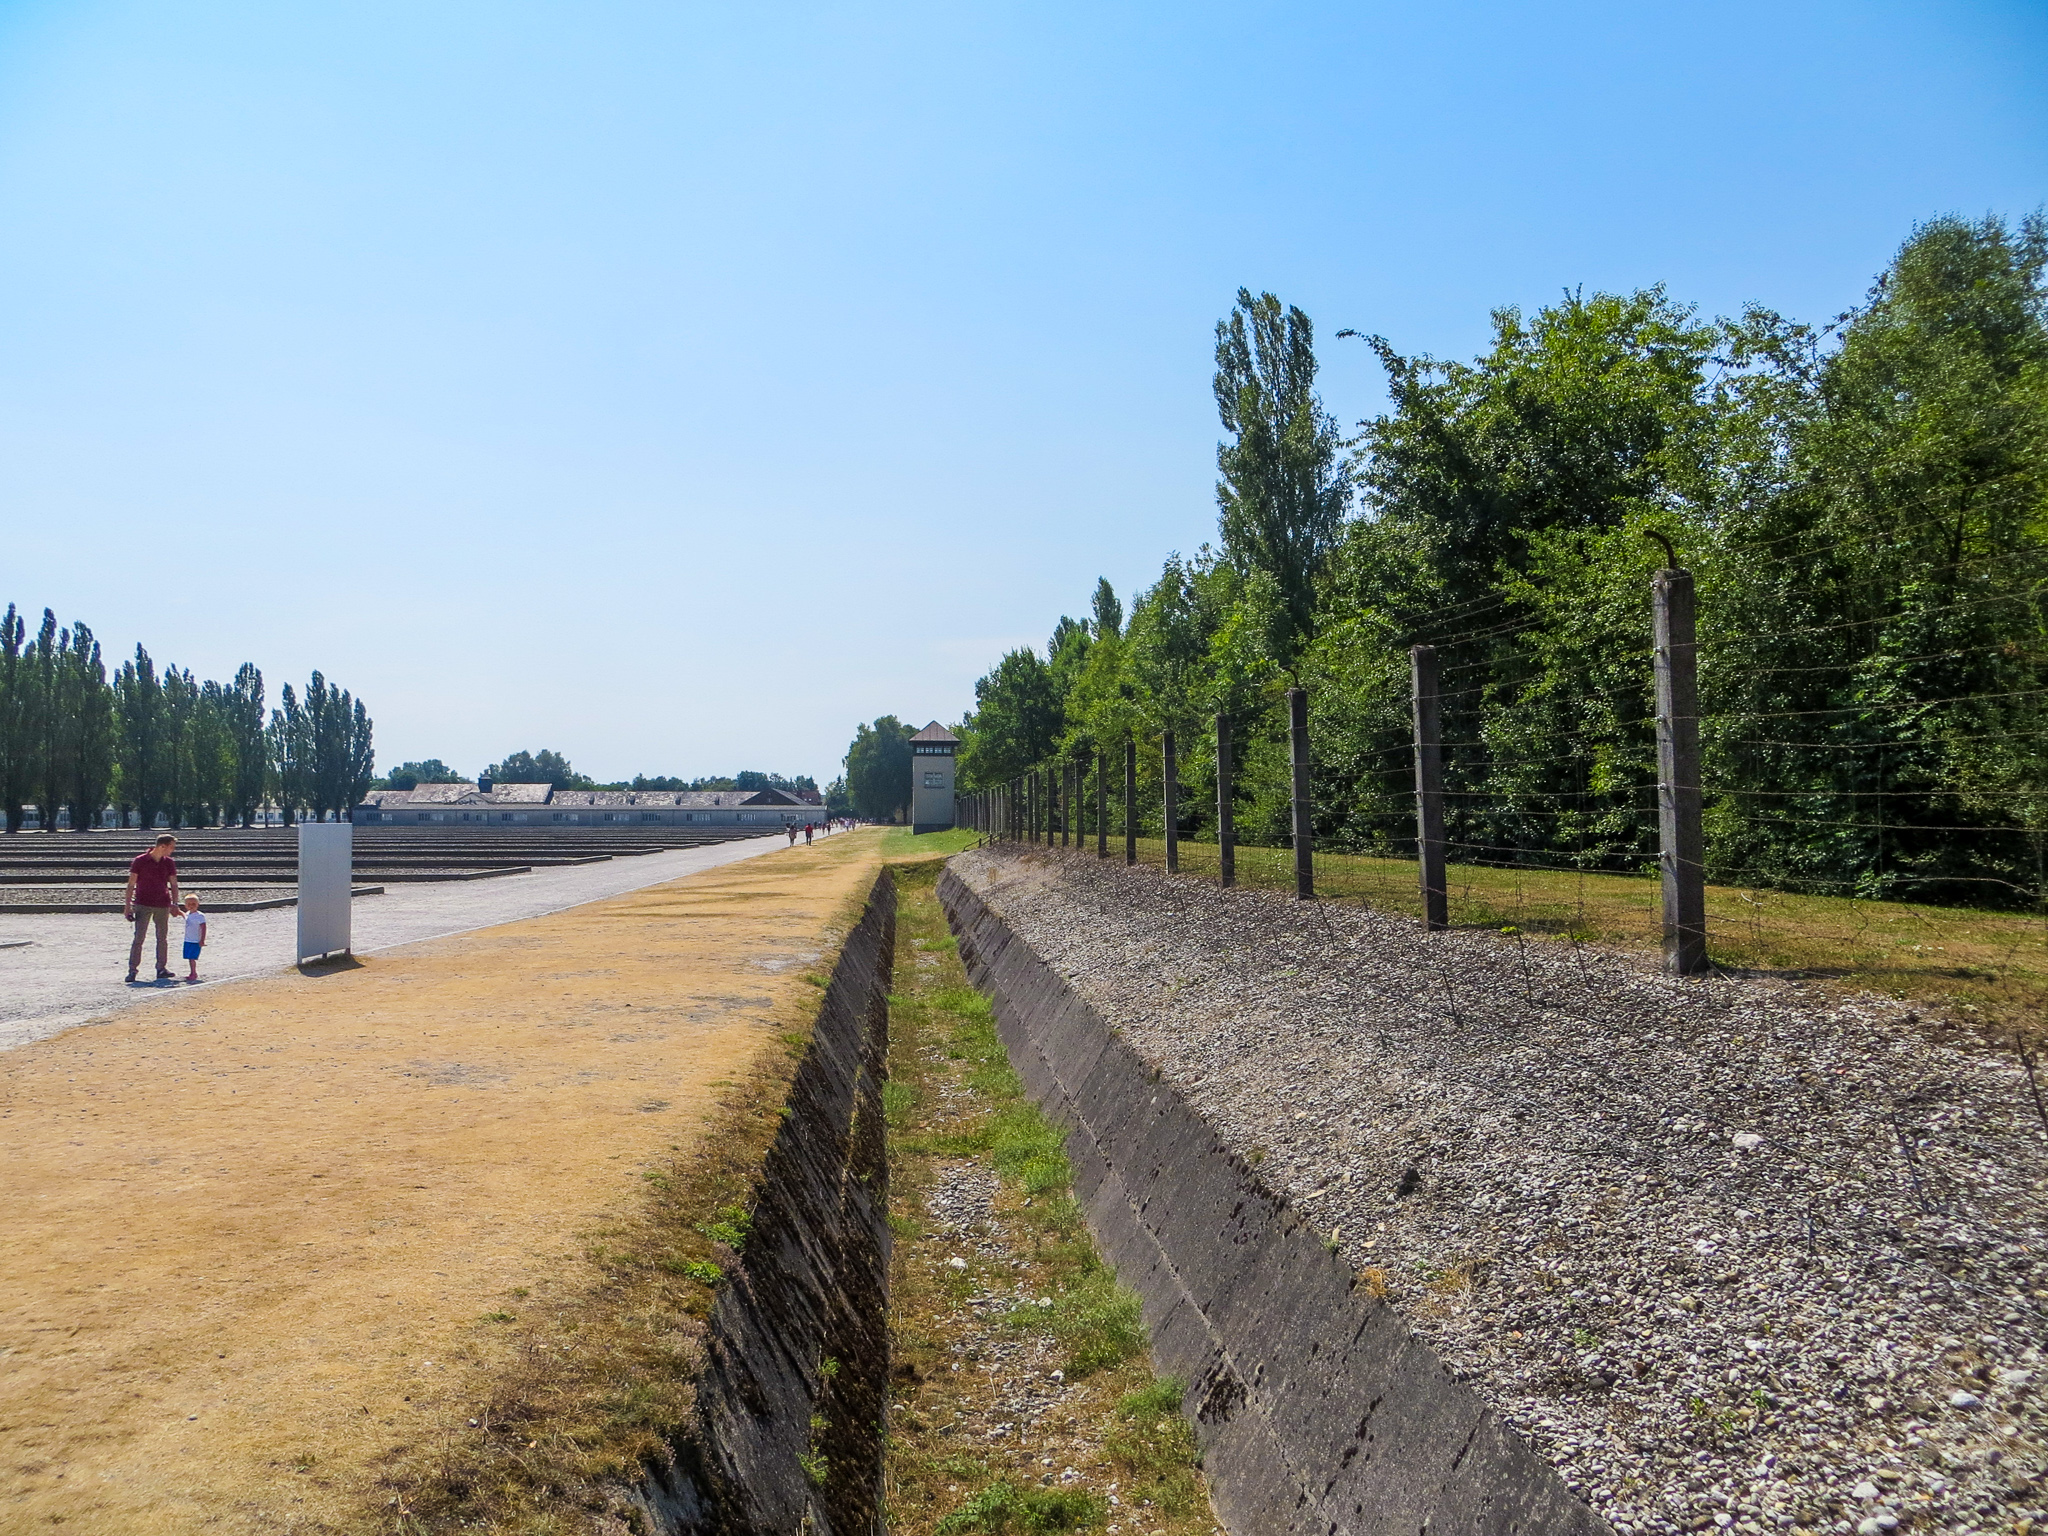 how to get to dachau from munich: dachau is only 25 min away